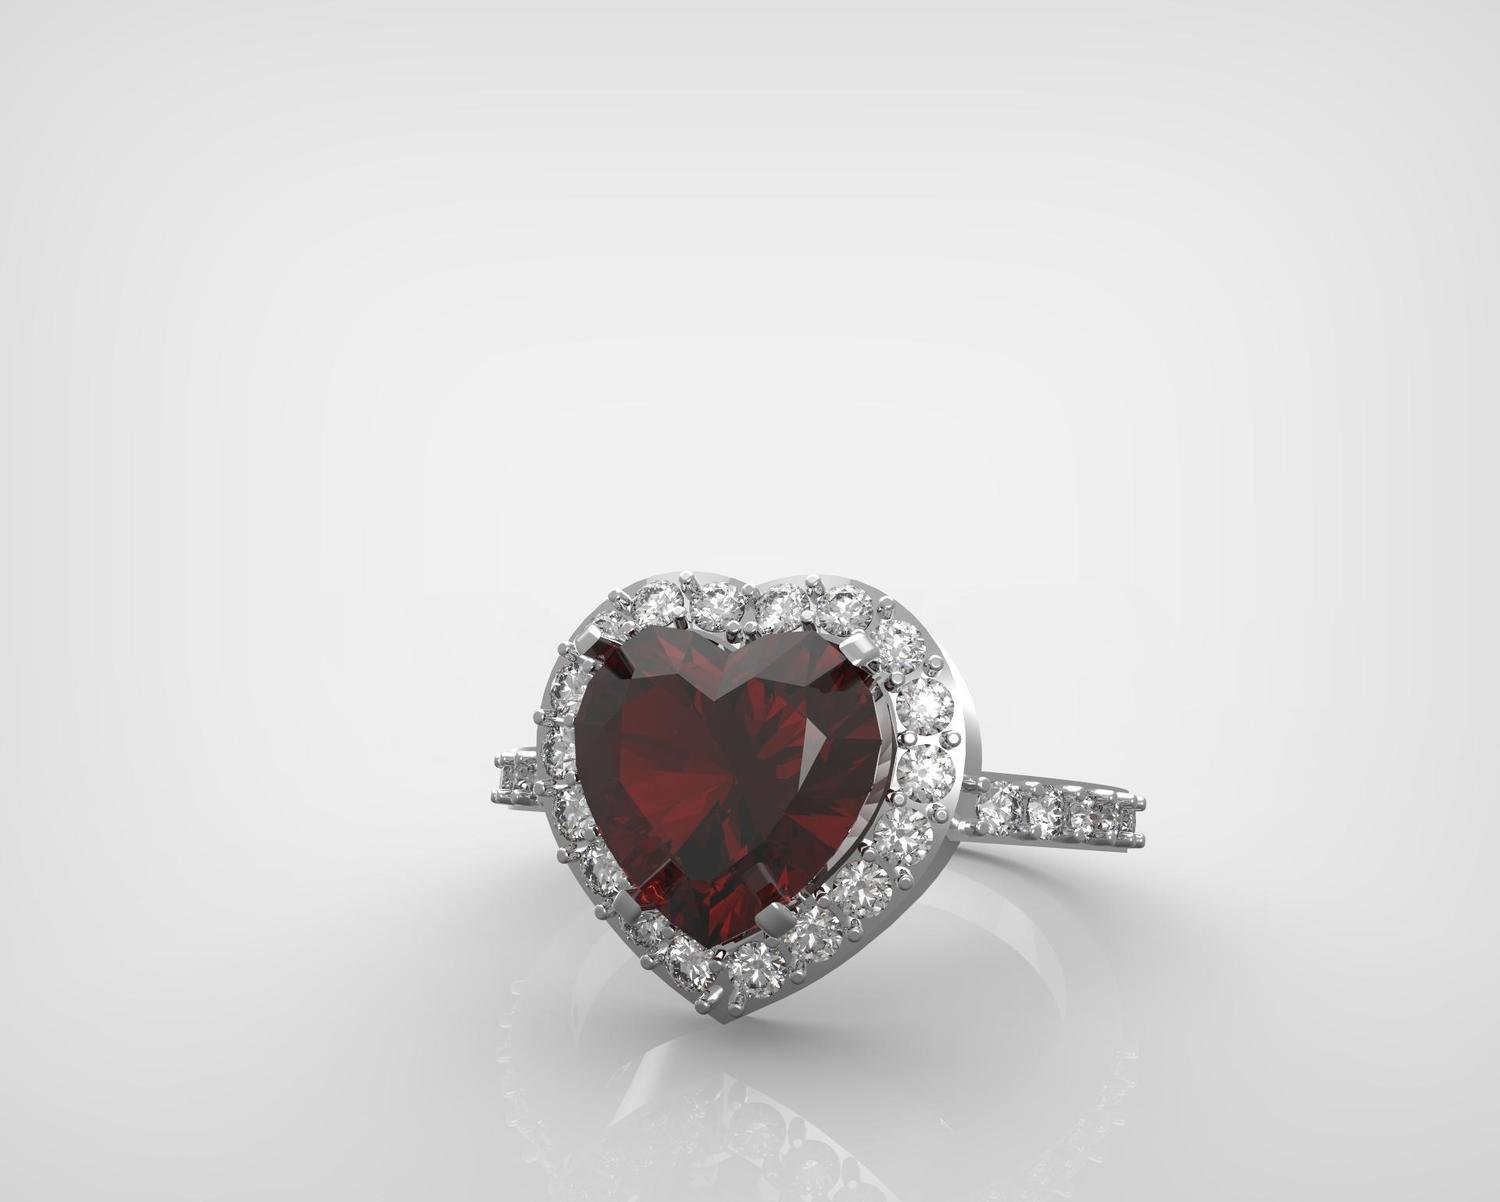 3D CAD Model of Diamond Engagement Ring with heart cut stone